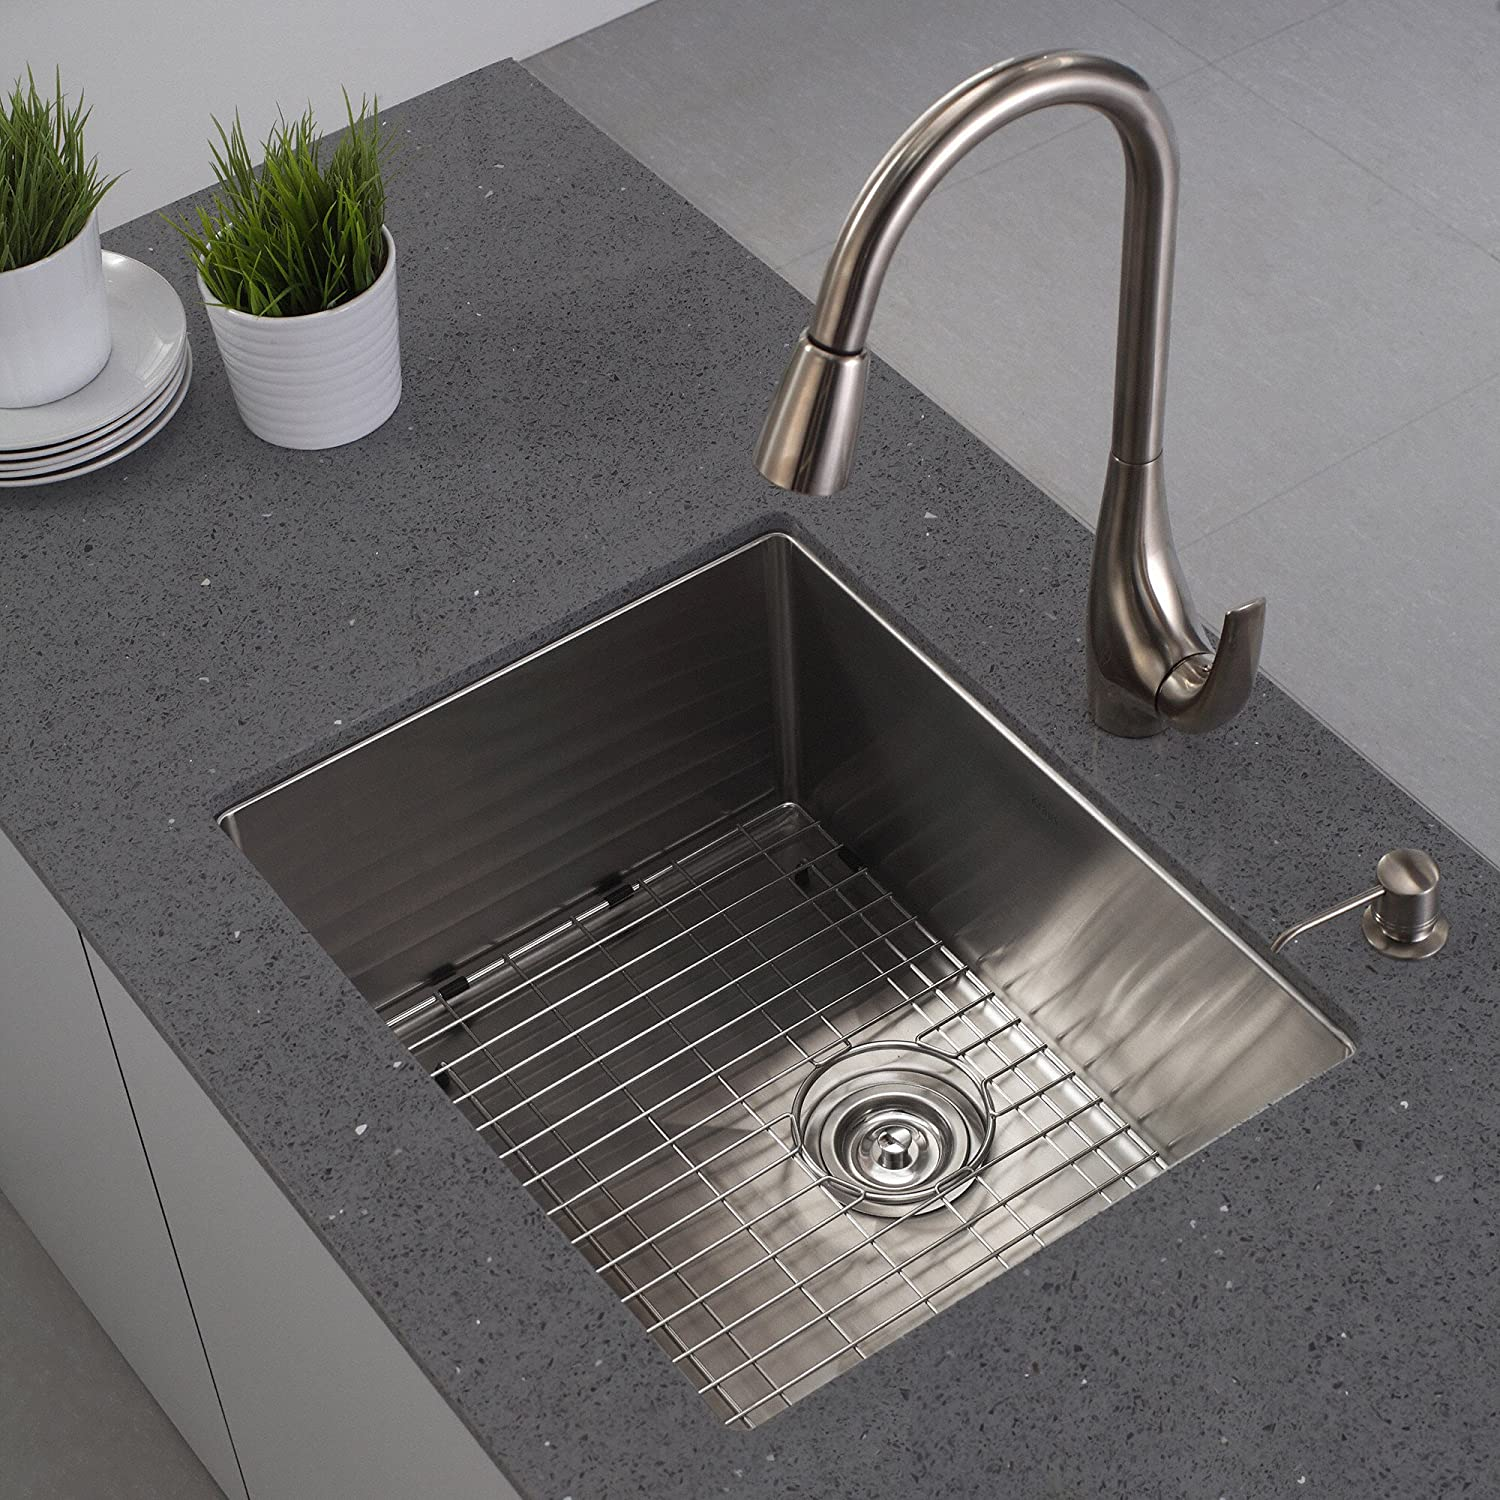 Lovely Kraus KHU101 23 23 Inch Undermount Single Bowl 16 Gauge Stainless Steel  Kitchen Sink     Amazon.com